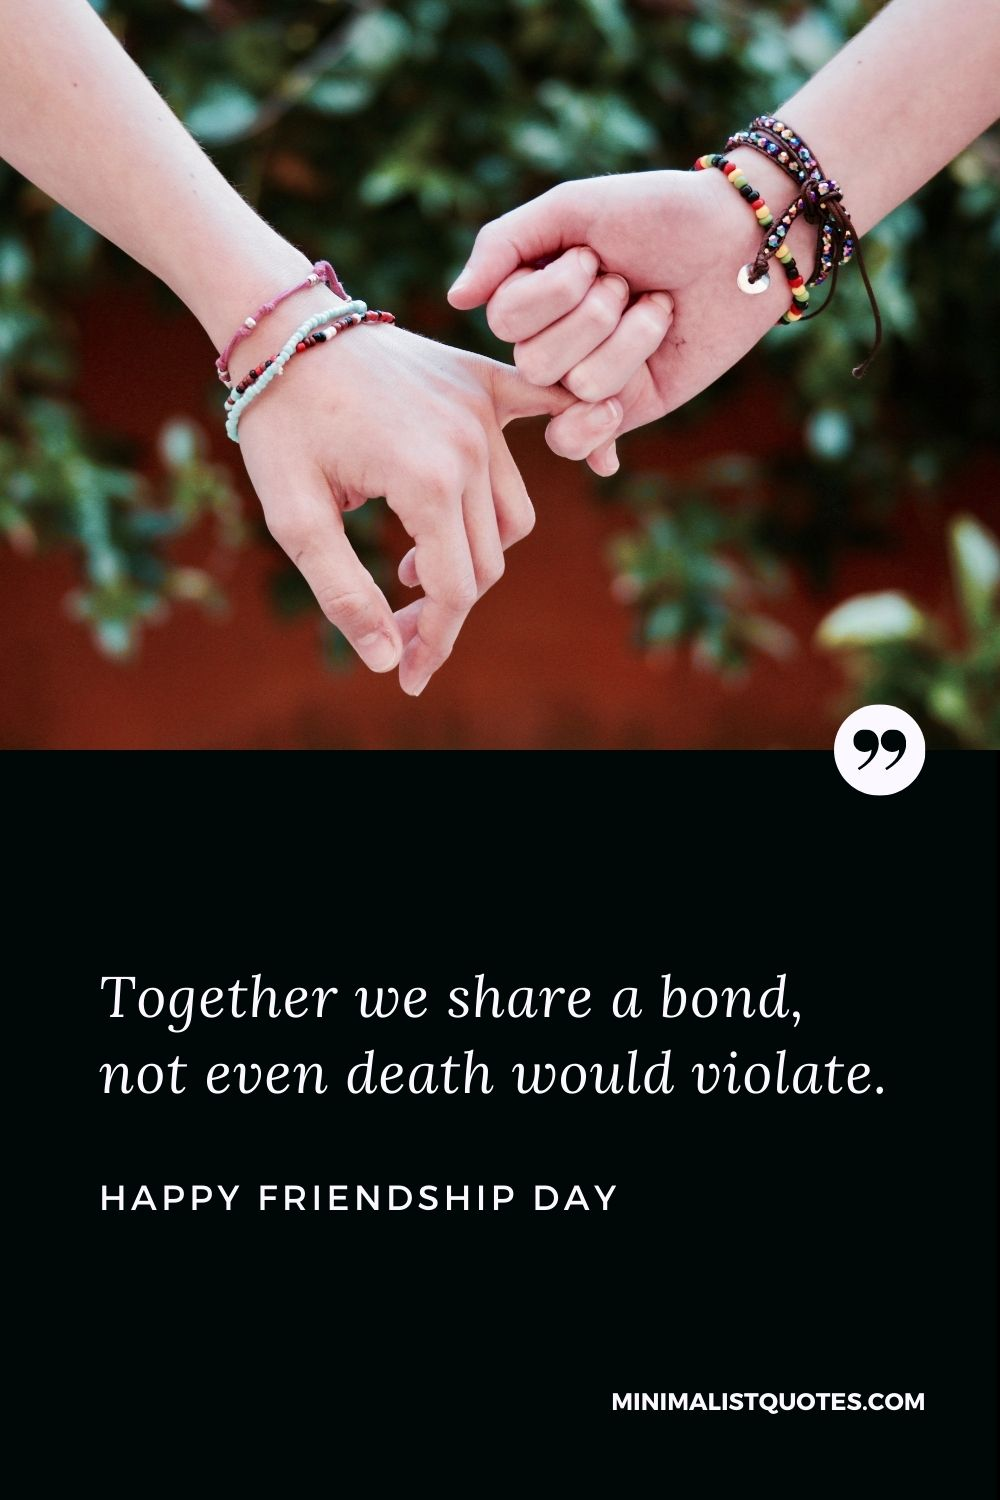 Happy Friendship Day Wishes - Together we share a bond, not even death would violate.